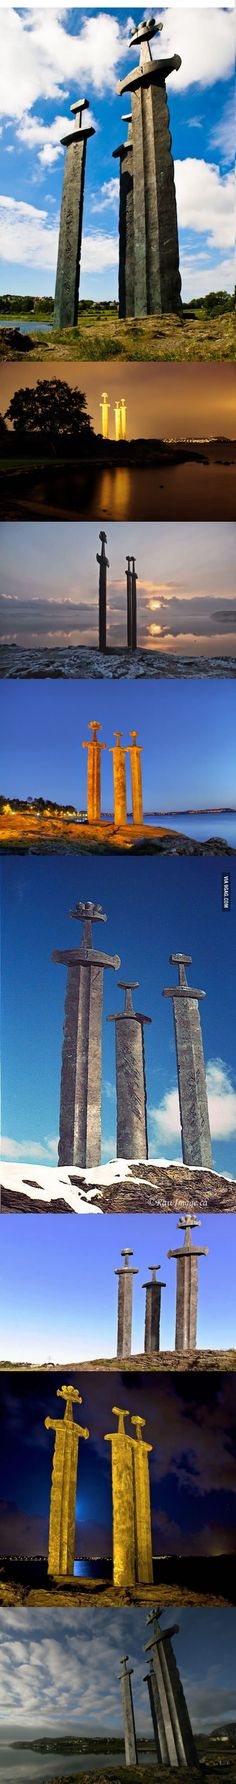 One of the coolest monuments in the world.